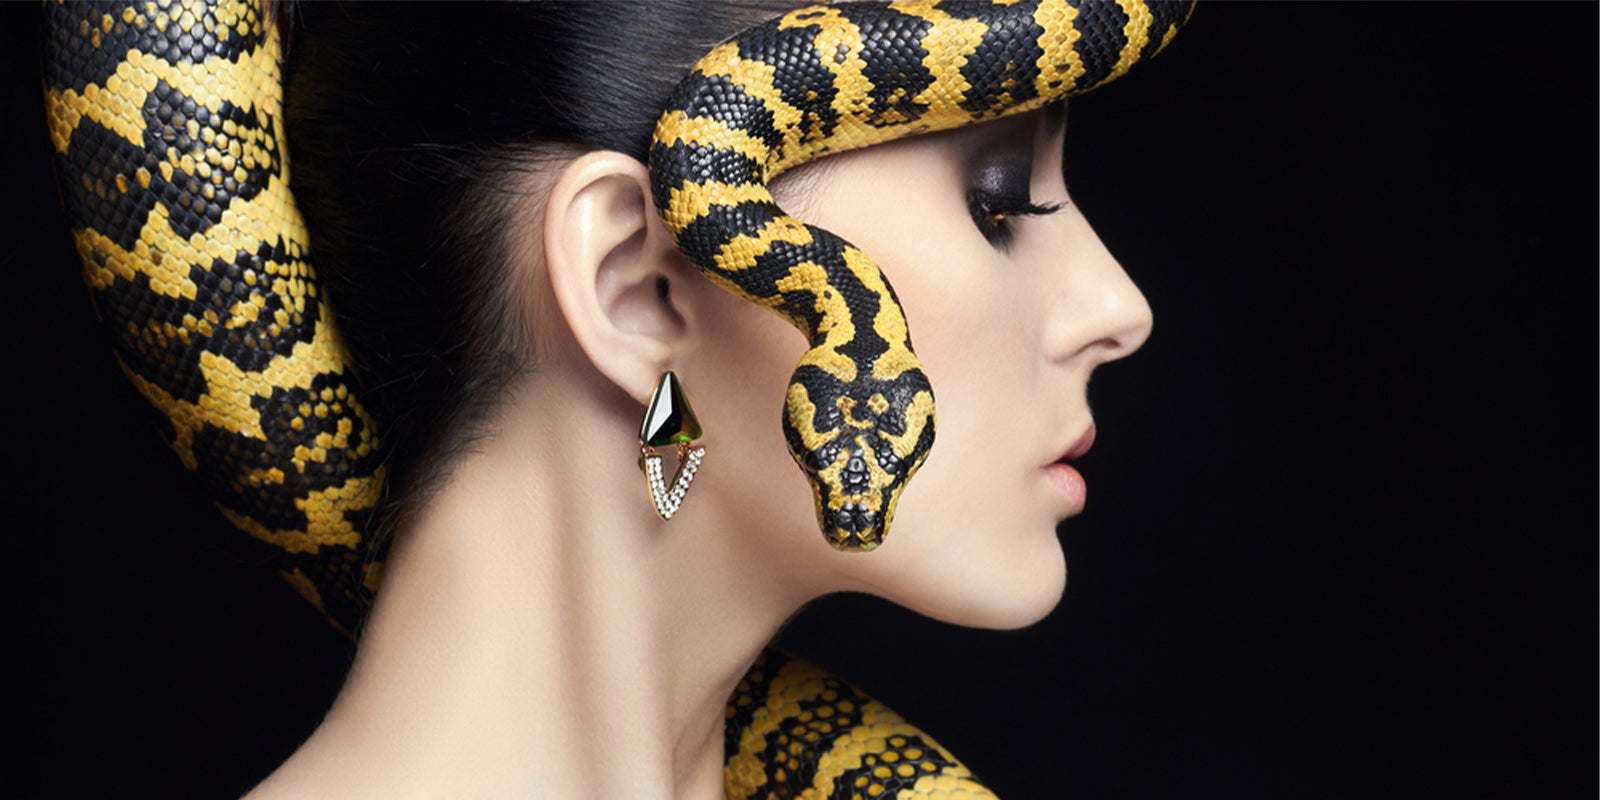 Woman with snake of head